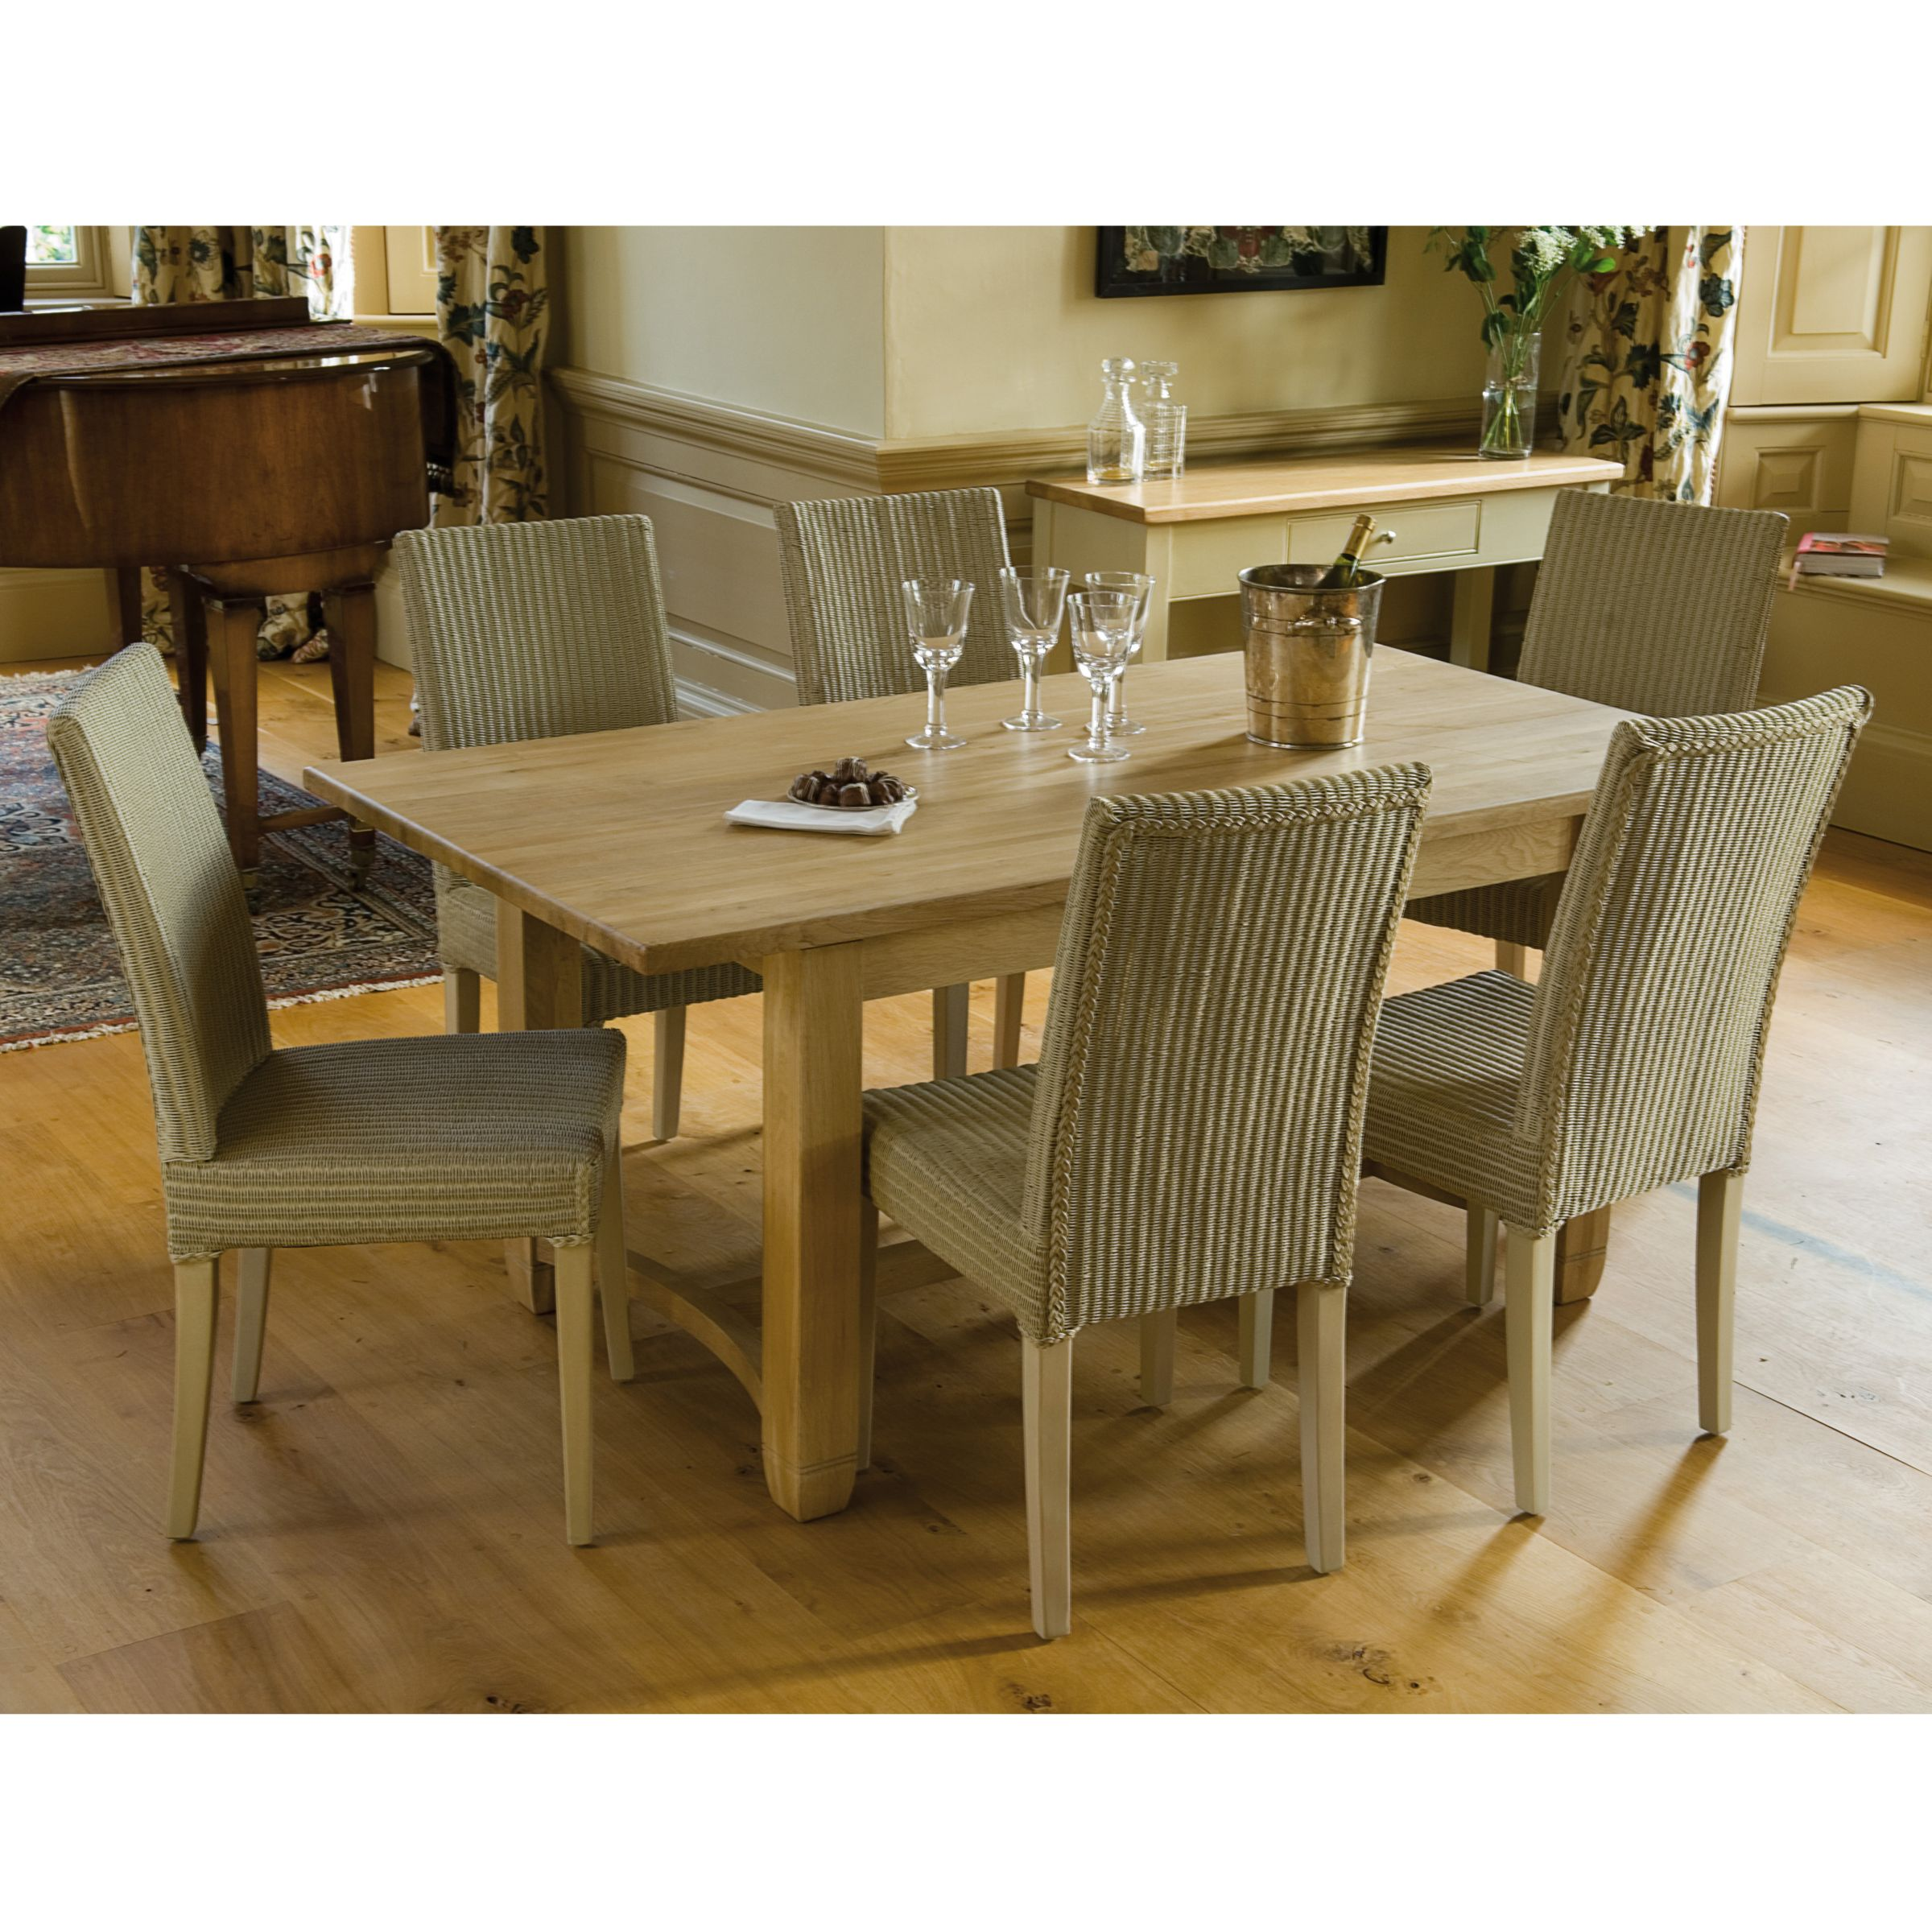 john lewis maharani living dining room furniture sale